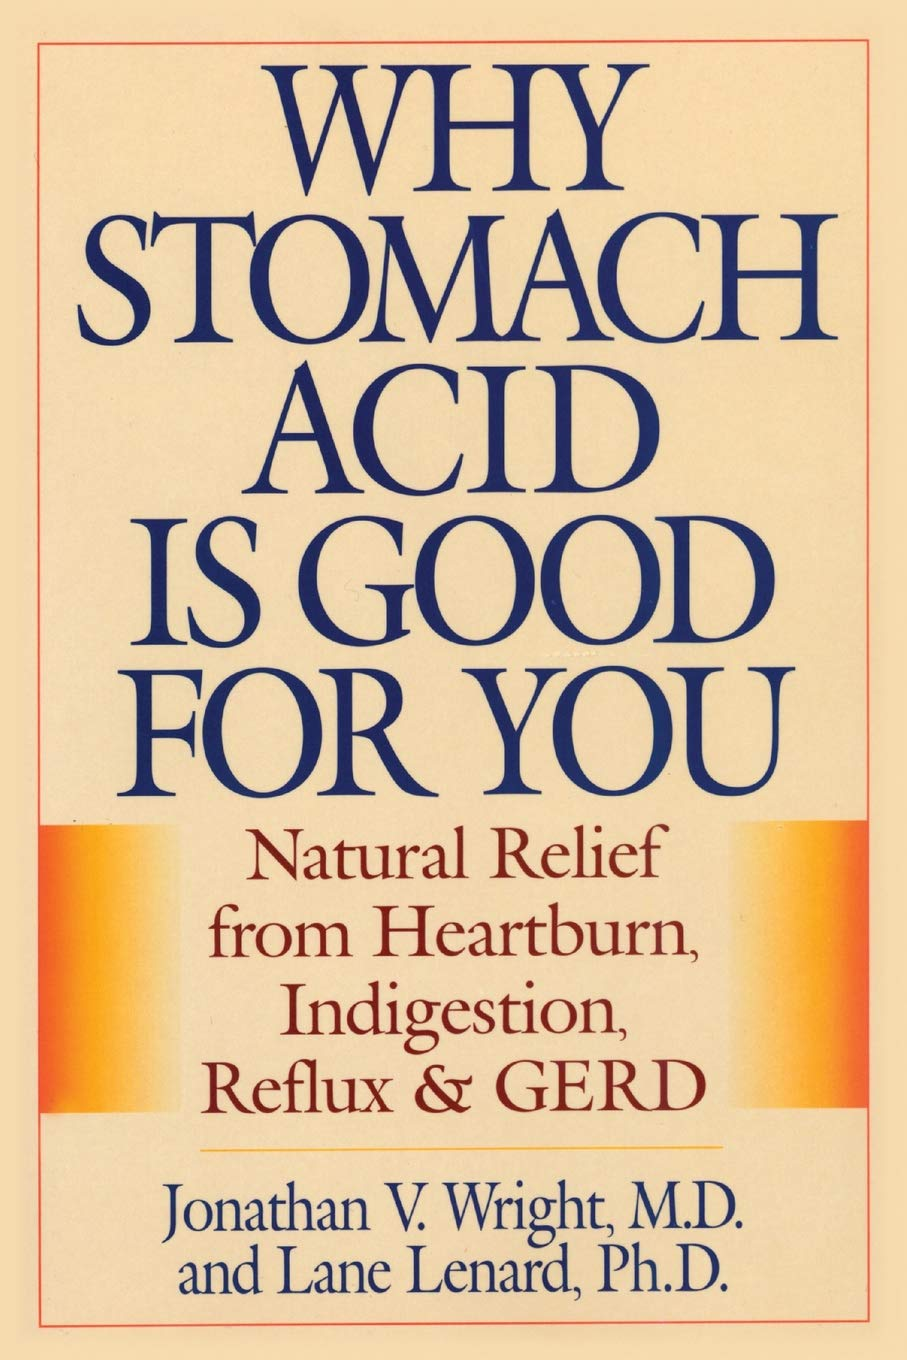 Why Stomach acid is good for you - By Jonathan WrightThis groundbreaking book unleashes a brilliant new plan for permanently curing heartburn by relieving the root cause of the problem: low stomach acid. The fact is that heartburn is caused by too little stomach acid -- not too much, as many doctors profess. As explained in this book, the current practice of reducing stomach acid may be a temporary fix, but this fix comes at a cost to our long-term health that is being ignored by the pharmaceutical companies, the FDA, and the thousands of physicians that prescribe anti-acid drugs like Prilosec, Tagamet, Zantac, Pepcid, and others.